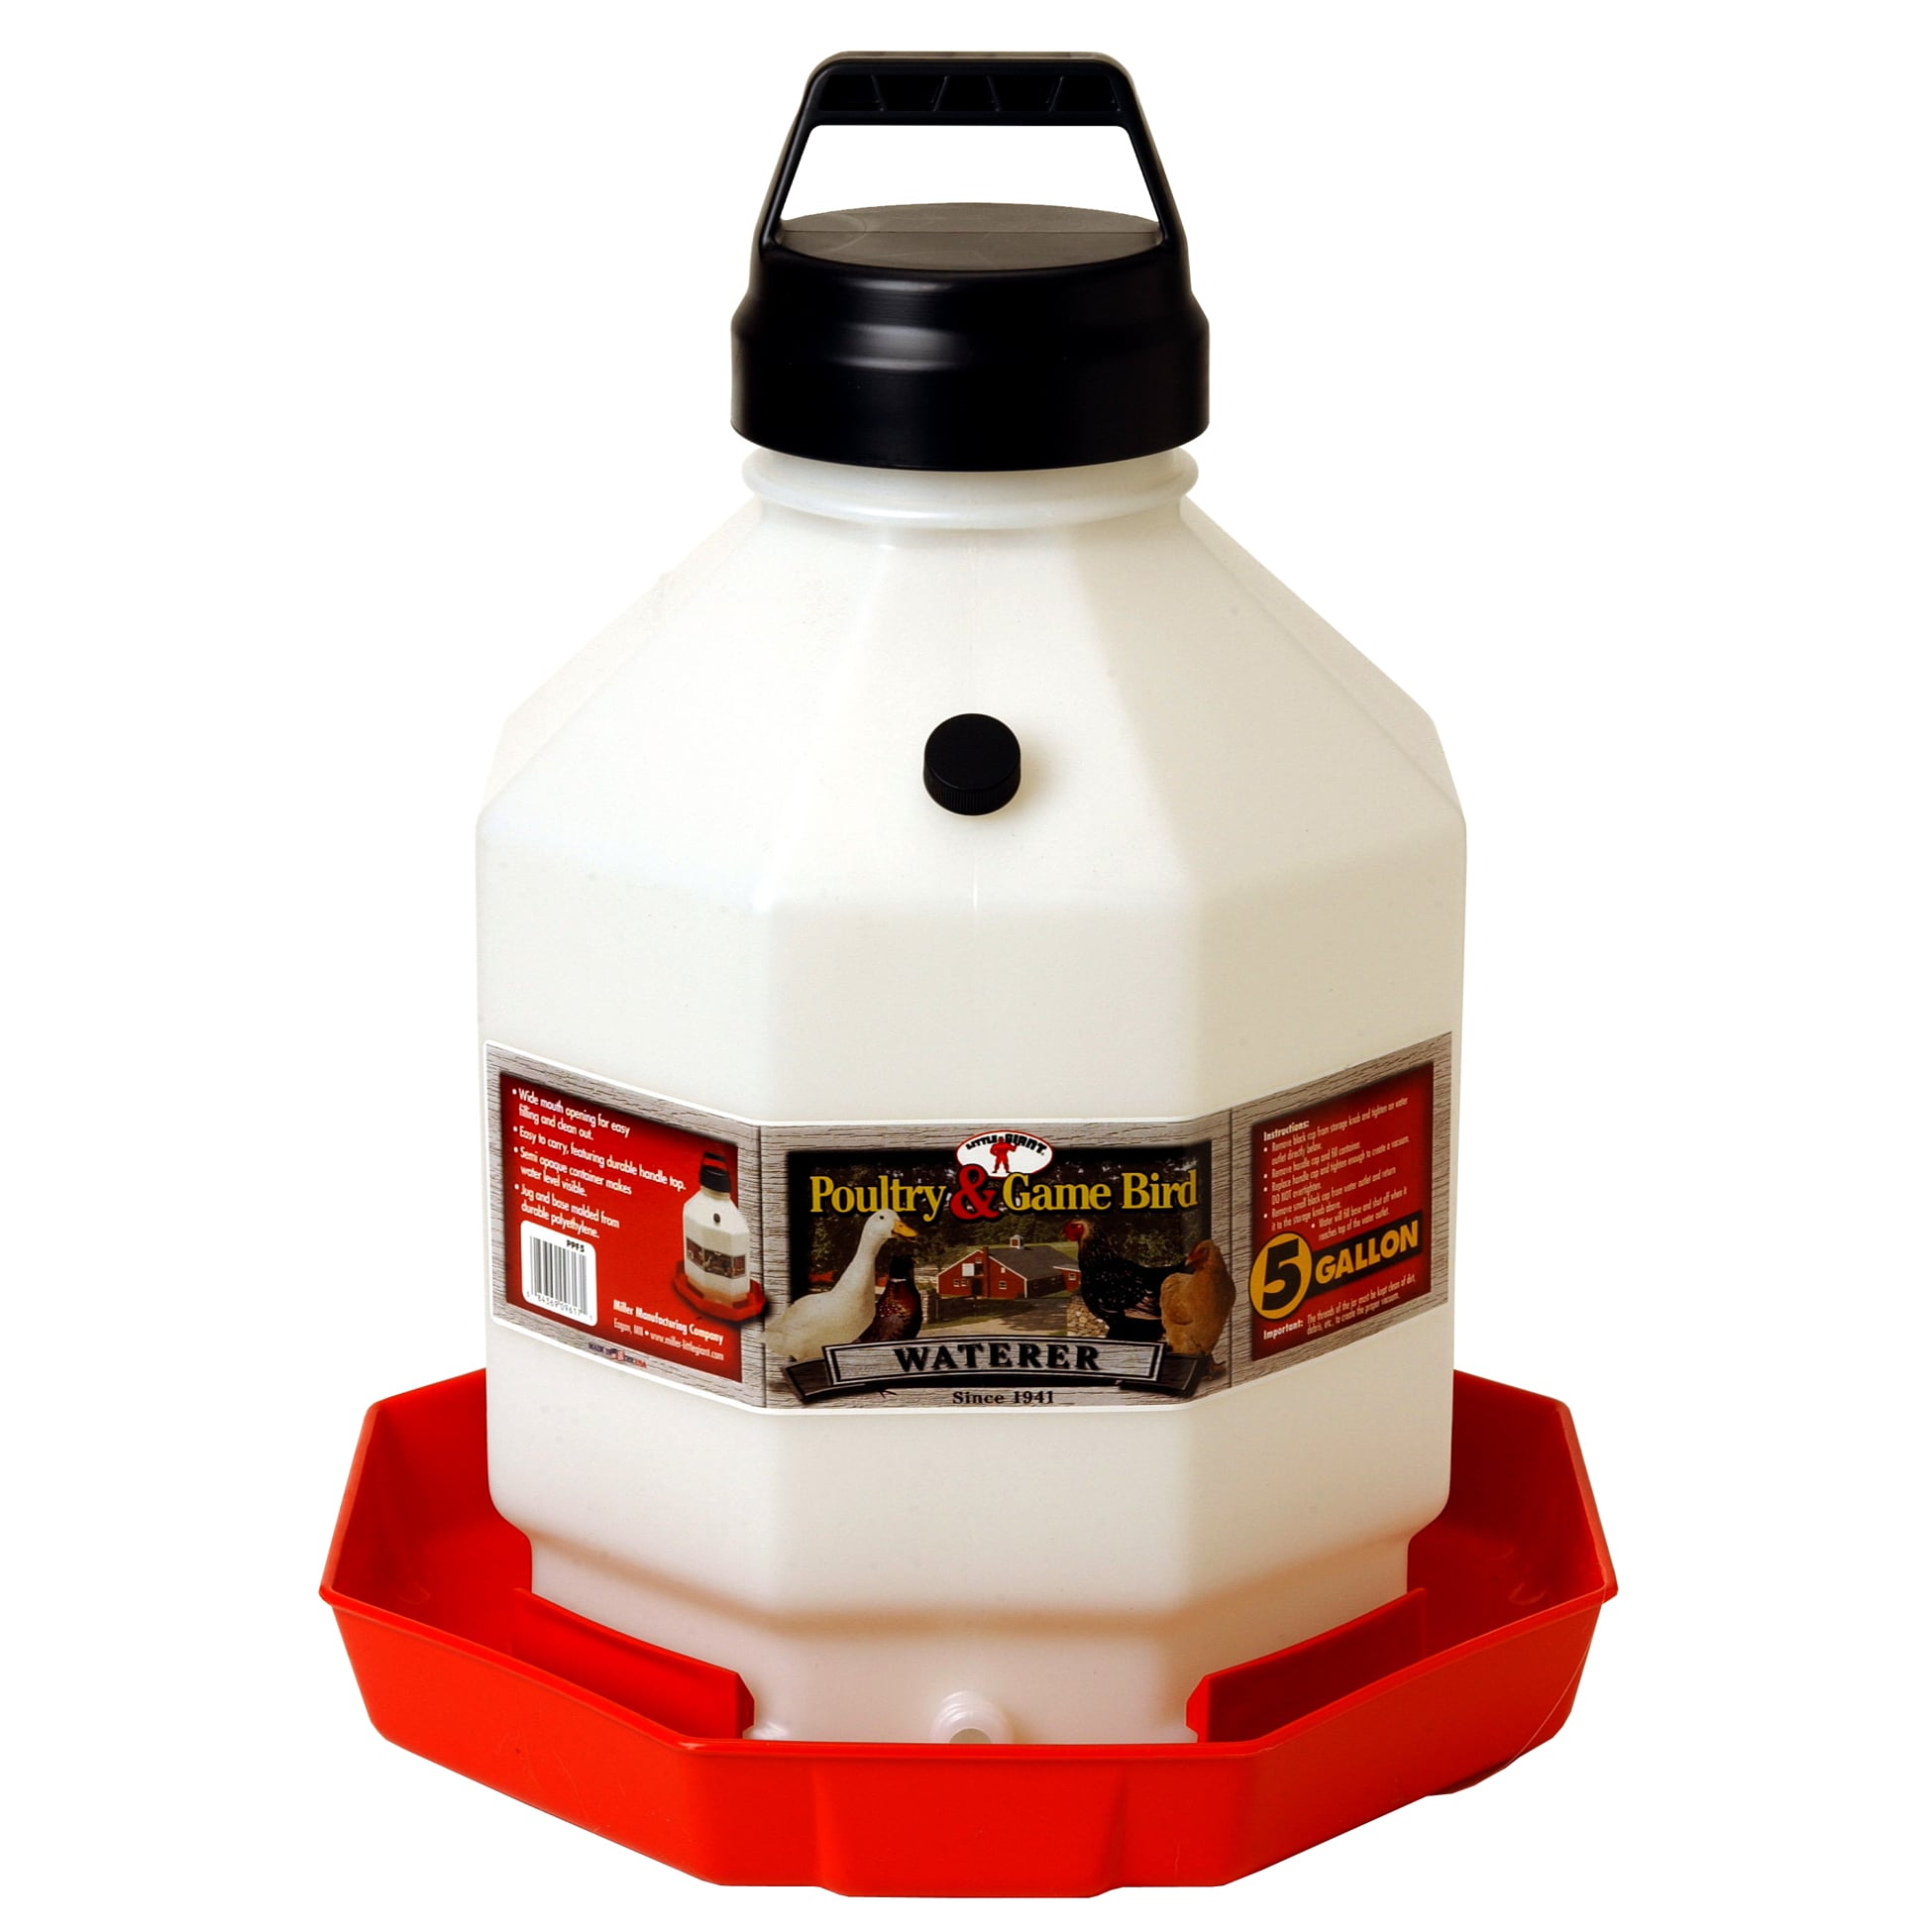 Miller Pet Lodge 5 Gallon Red Plastic Poultry Waterer (Wa...